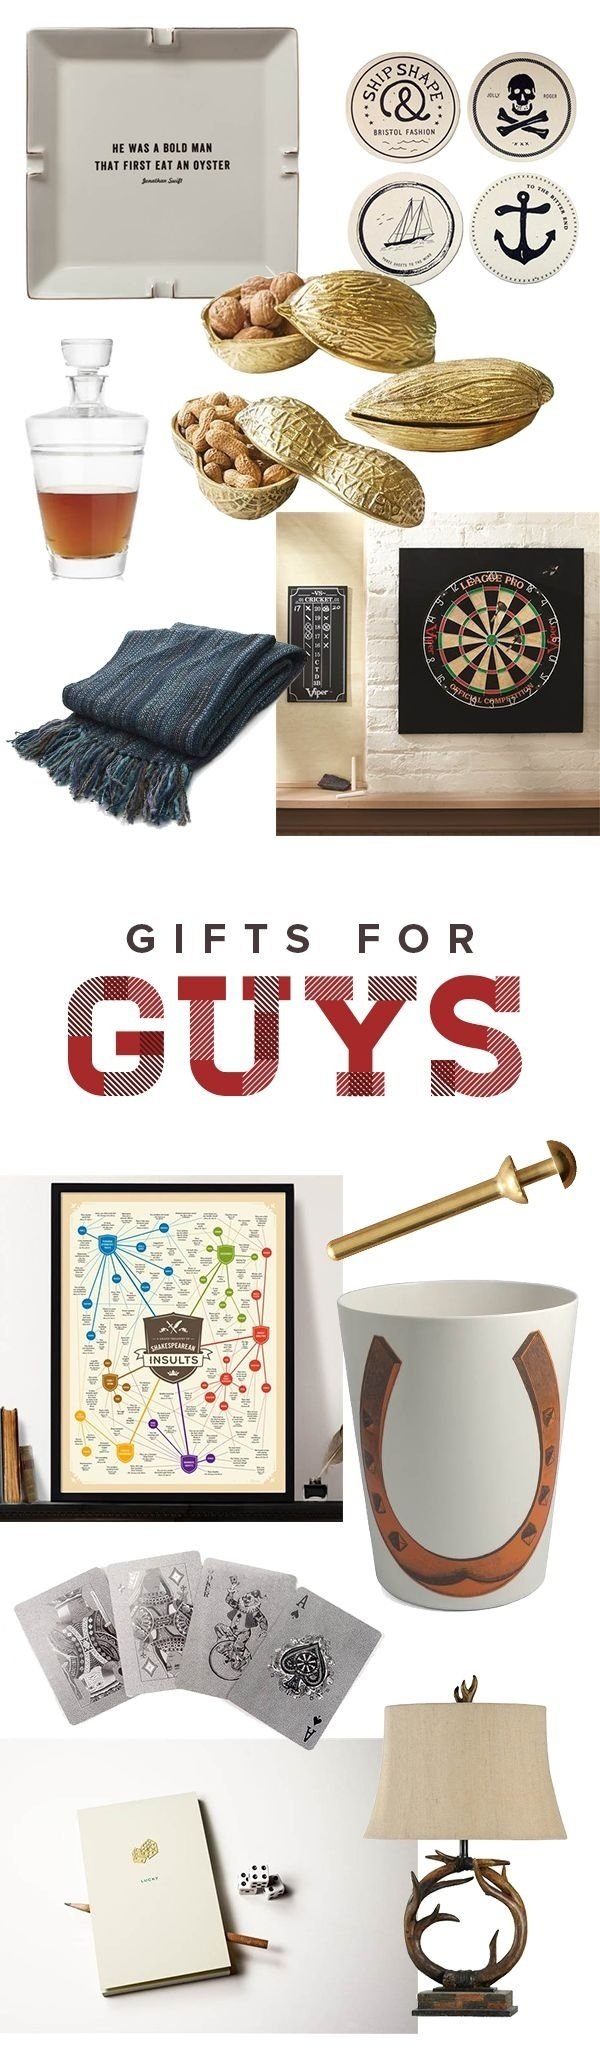 10 Lovable Gift Ideas For 22 Year Old Male 80 best gift ideas images on pinterest gift ideas best gift ideas 4 2020